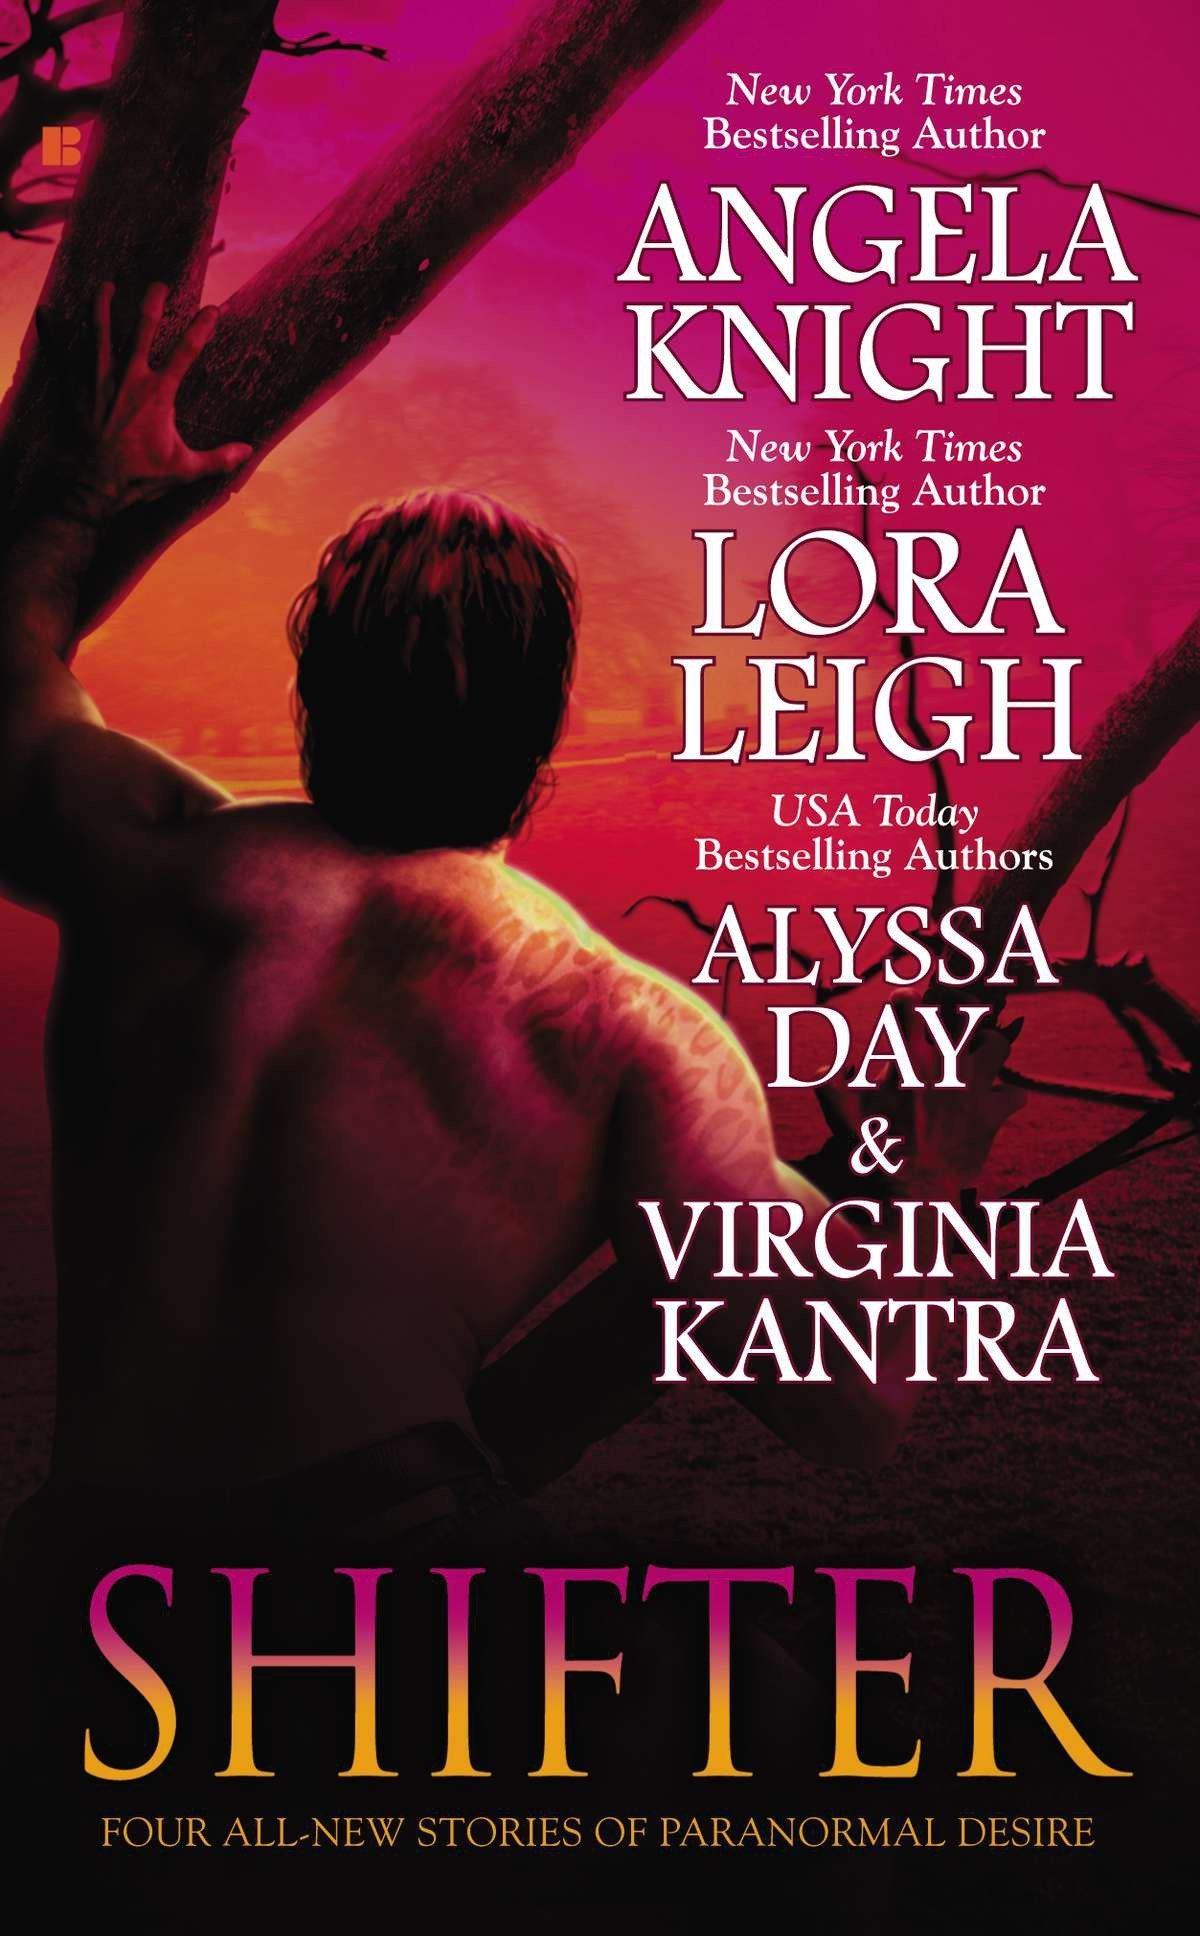 Image result for shifter angela knight book cover